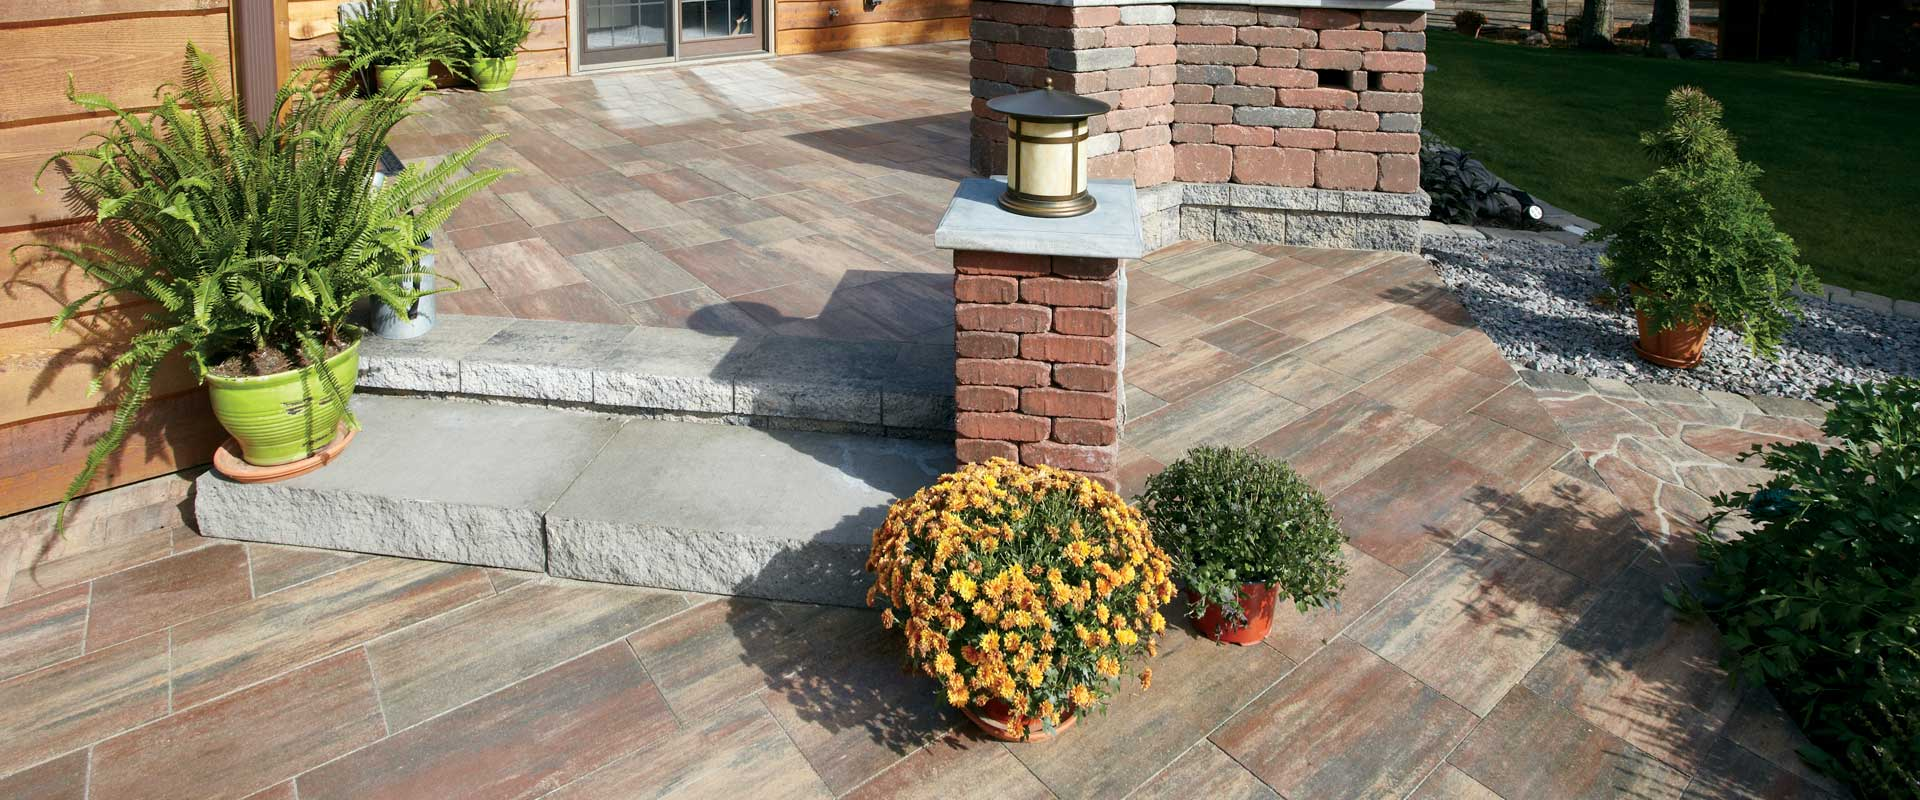 designs interior paving stone pavers lowes backyard paver for concrete red patio